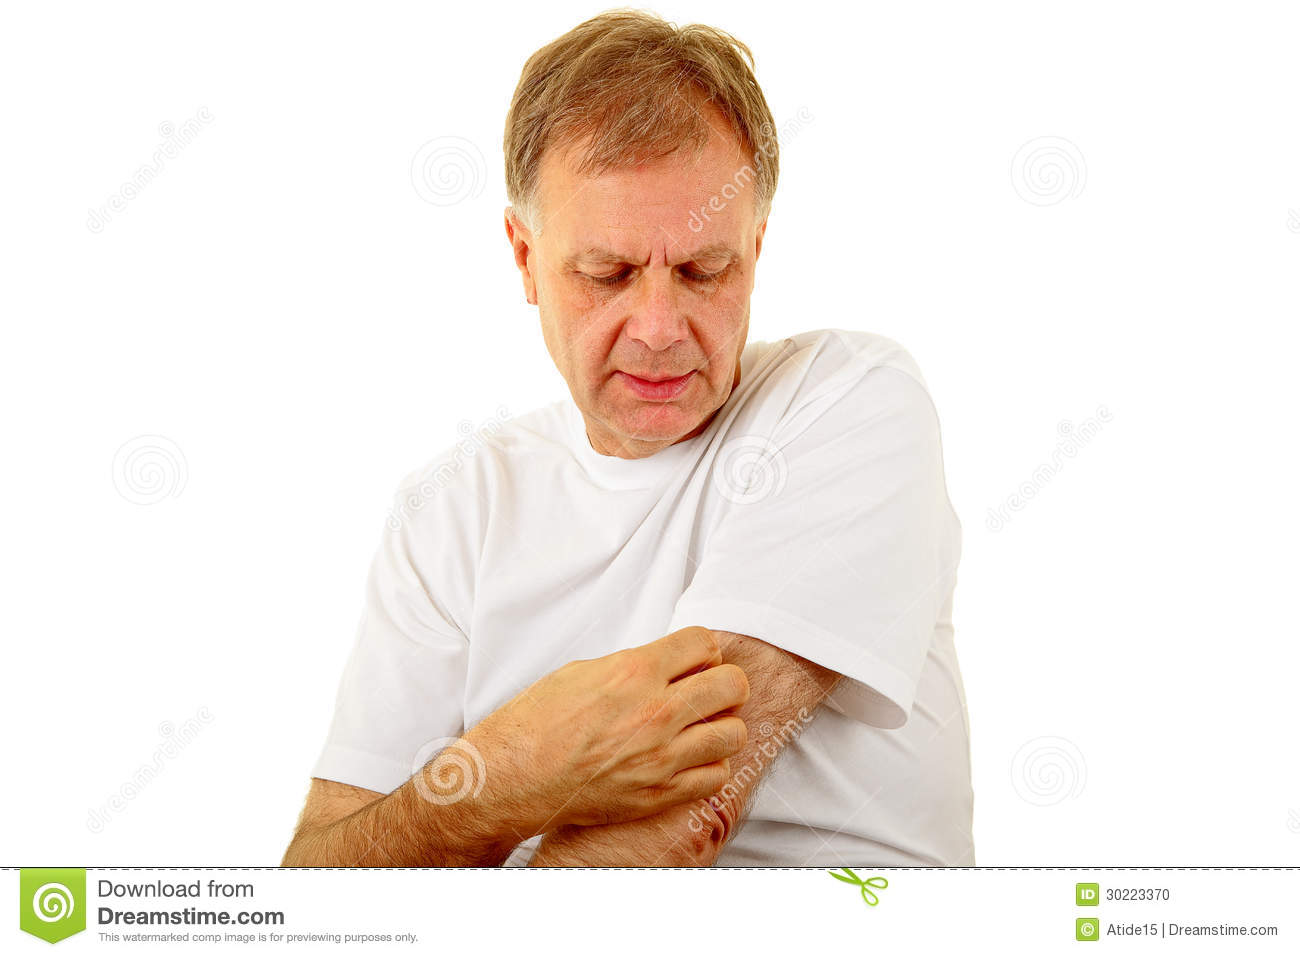 Itching Stock Photo - Image: 30223370